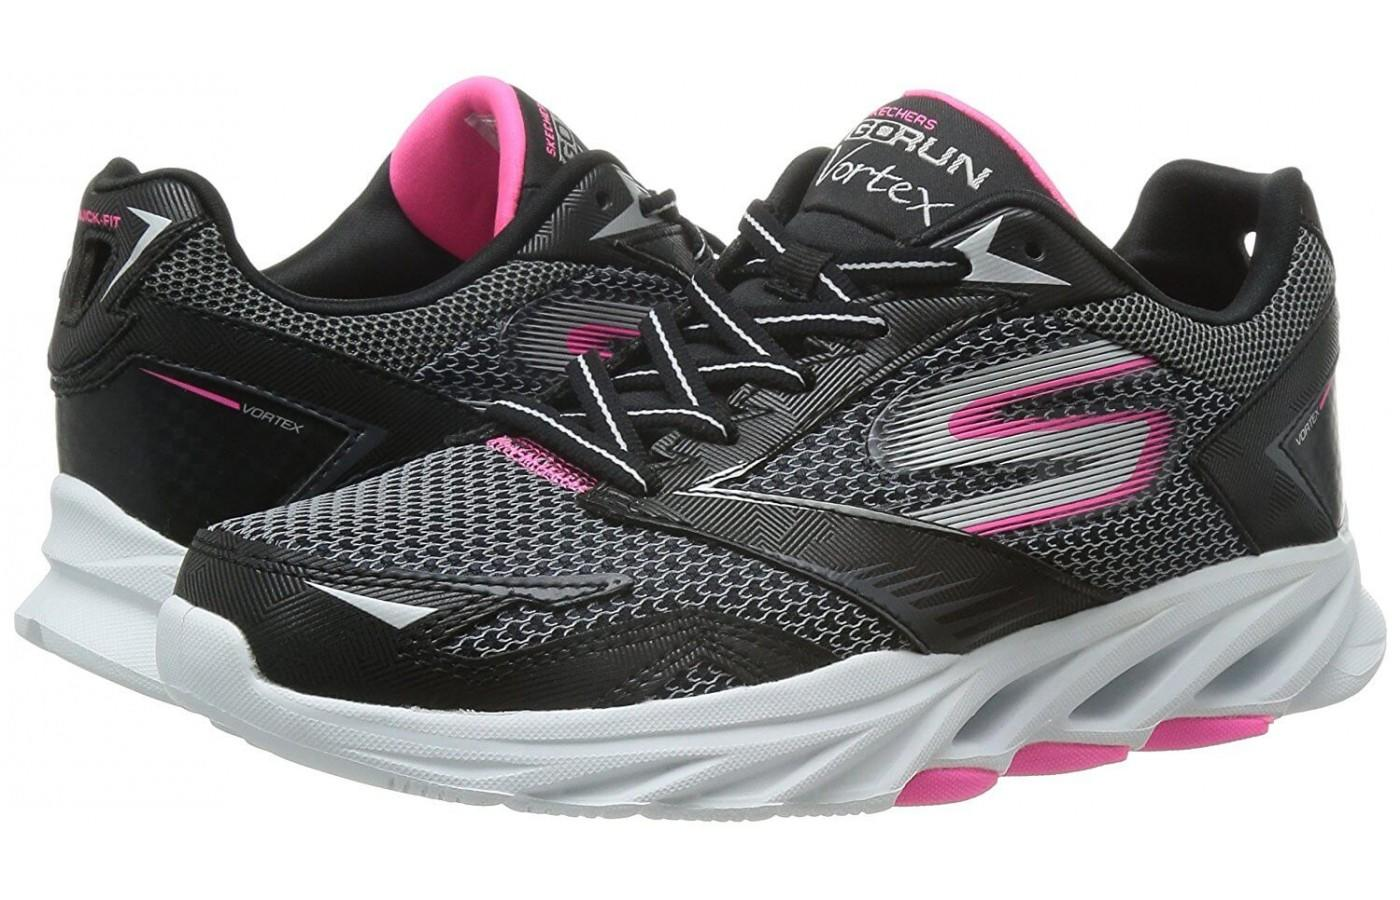 Pair of Skechers GoRun Vortex in black with pink and white accents